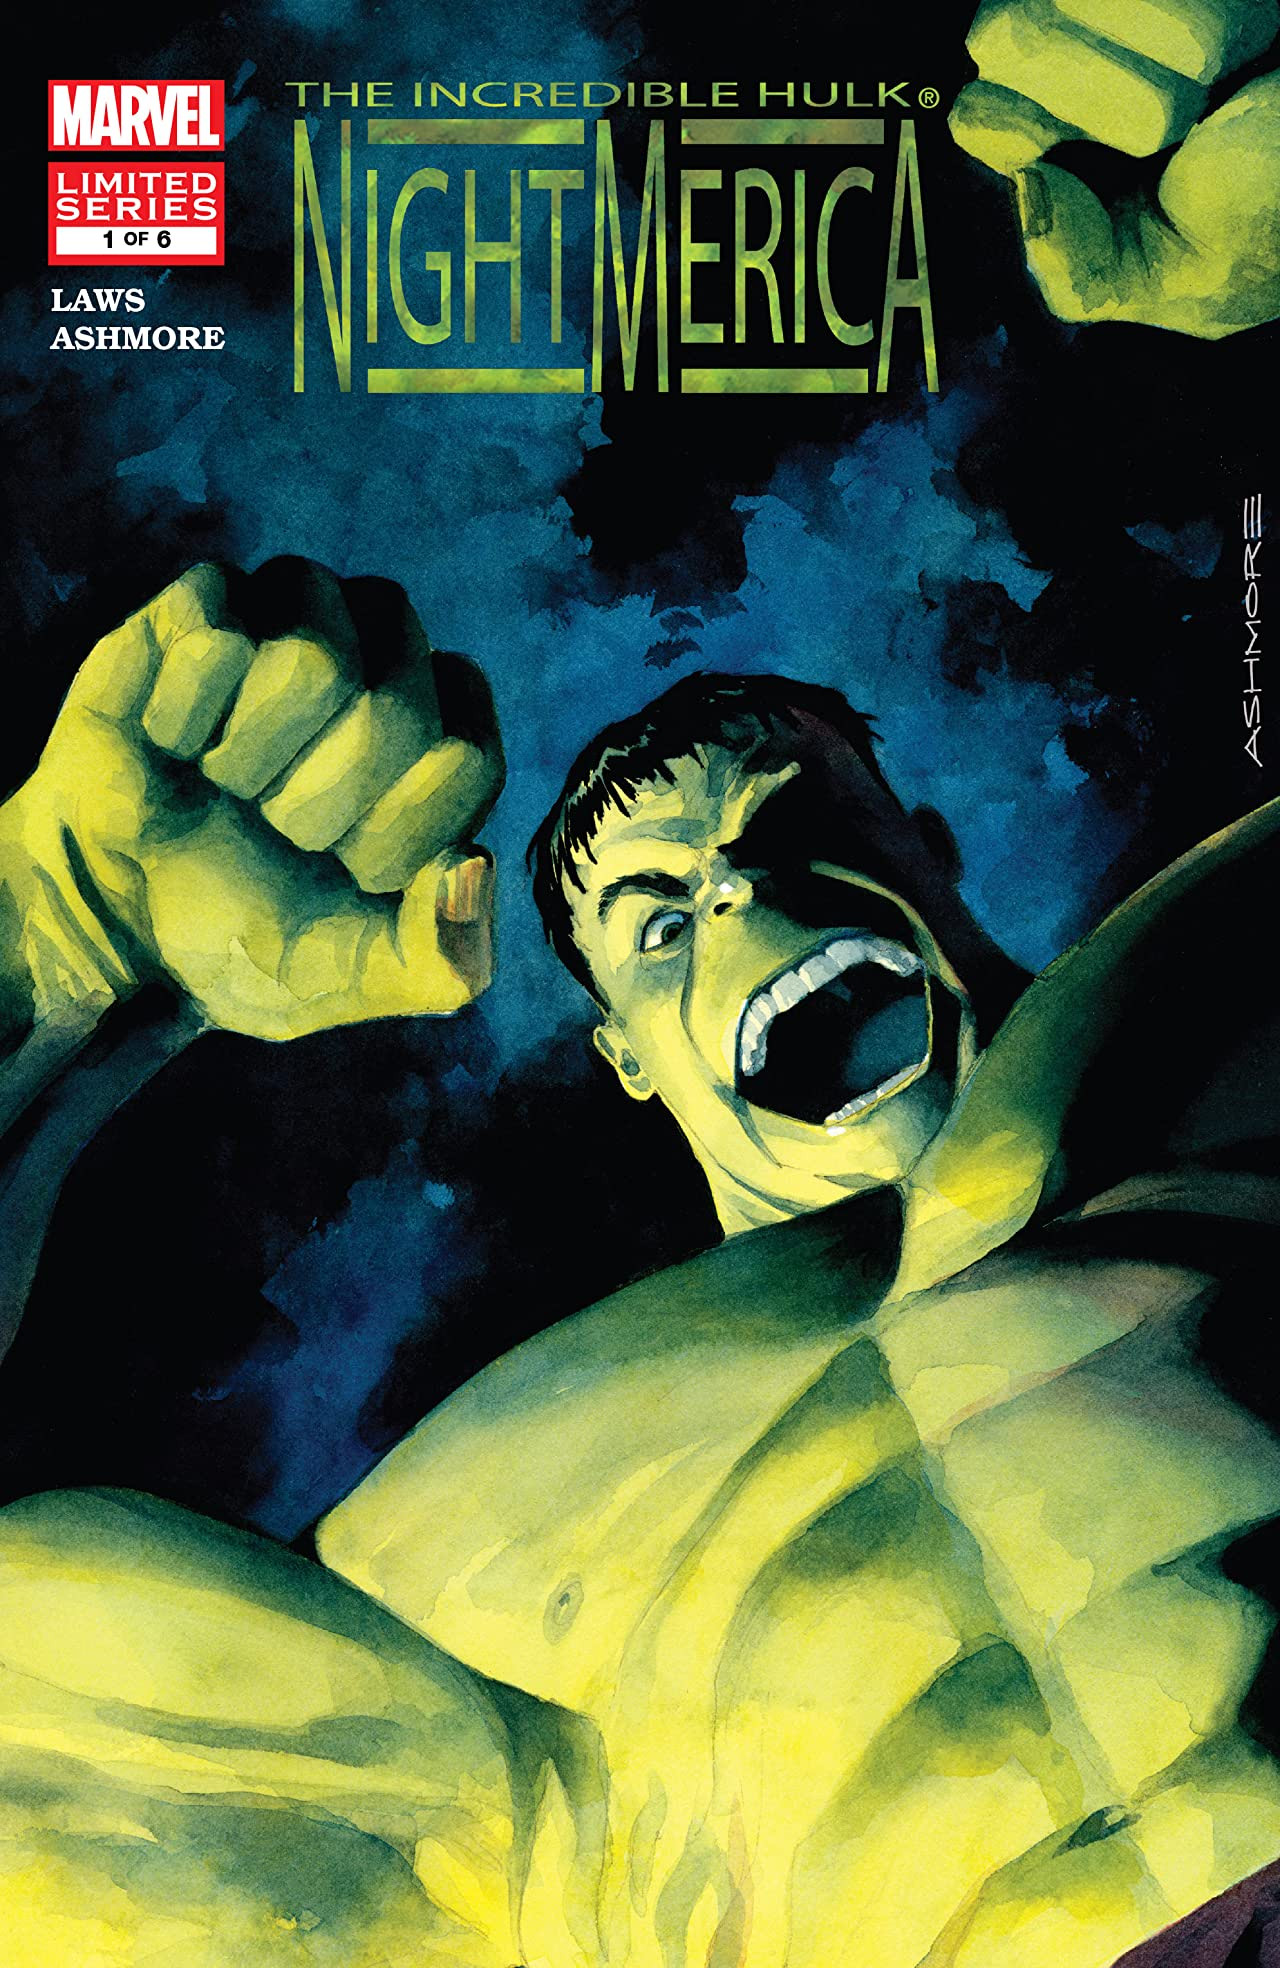 Hulk Nightmerica Vol 1 1.jpg